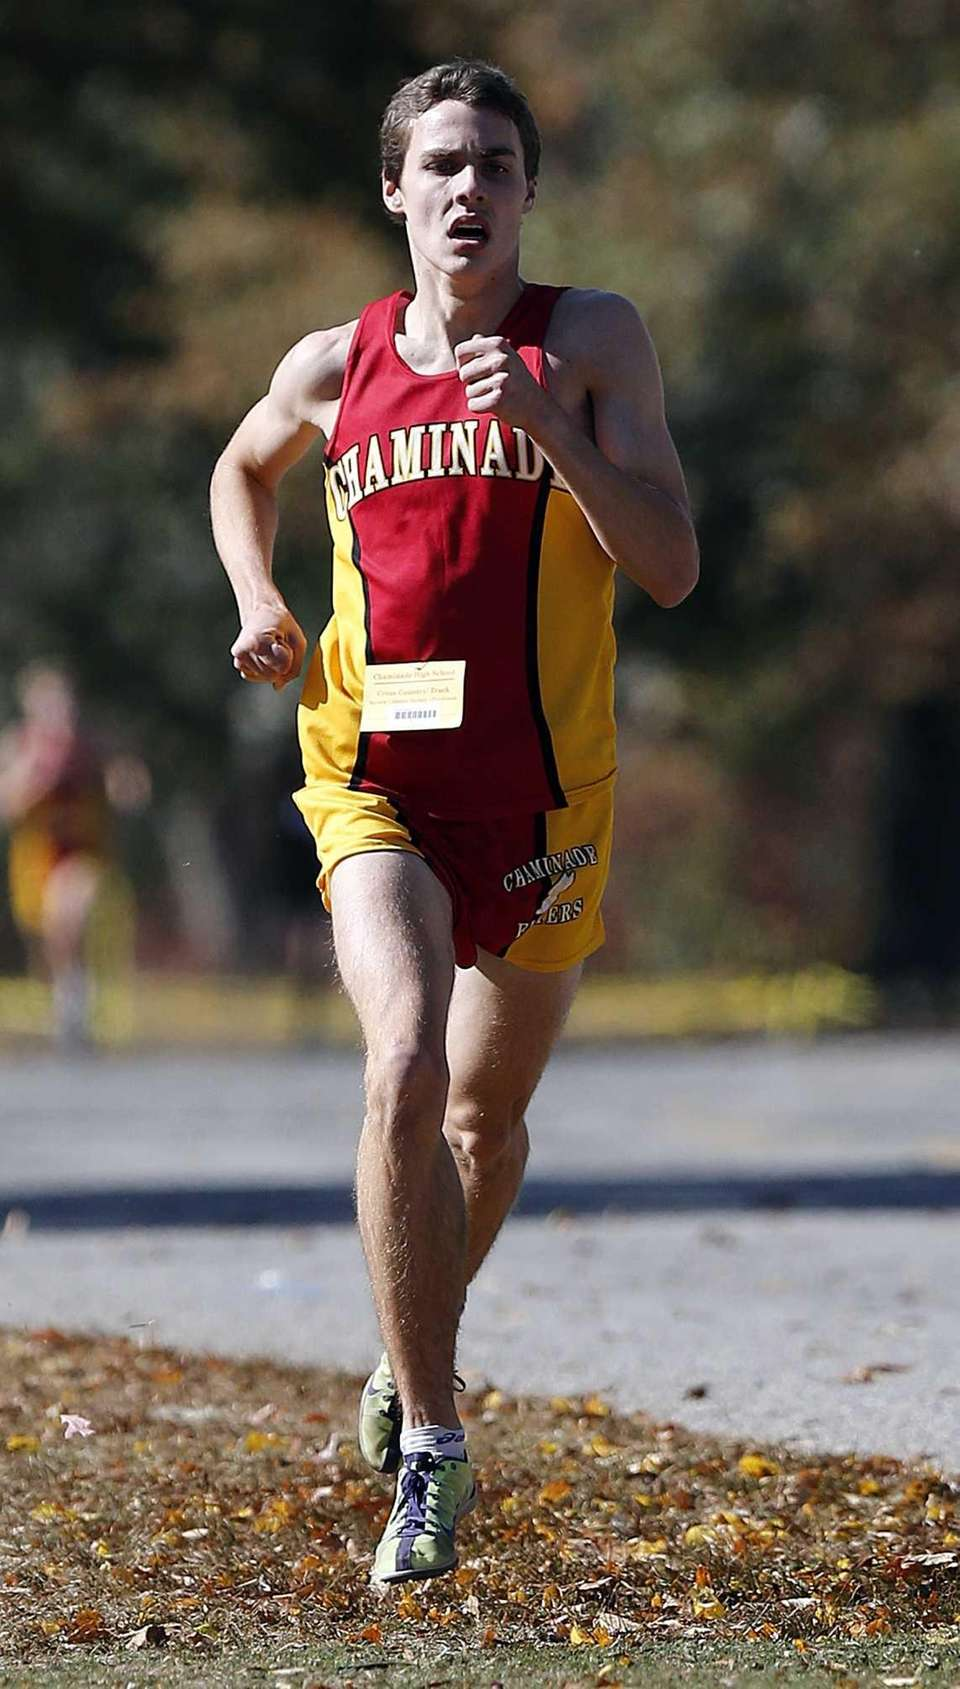 Chaminade's Thomas Slattery finishes first in the boys